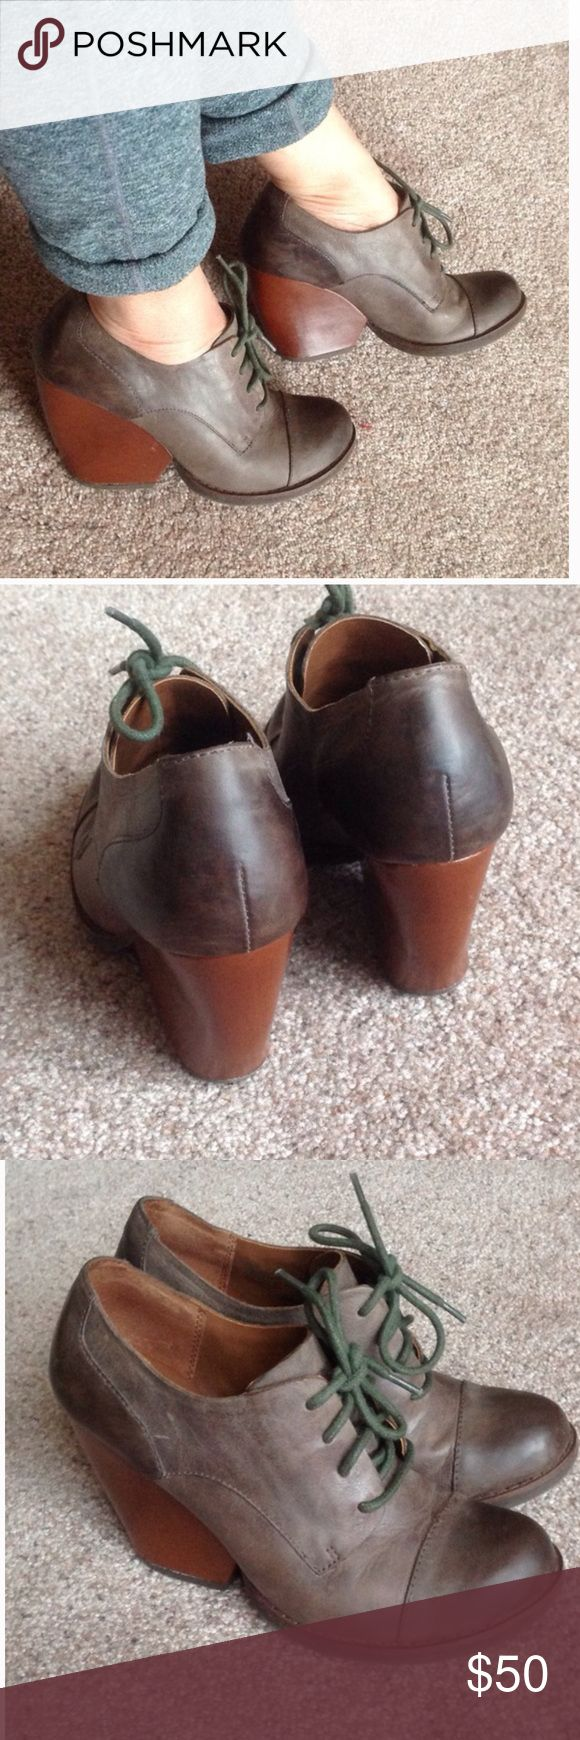 Kors distressed look ankle boots In lightly worn condition. Shows some minor signs of wear only. Please enlarge photos for more details. Made of real leather. Fits a size between 5.5 to 6 (It's my size), but too small for size 6.5.                                     e kork ease Shoes Ankle Boots & Booties